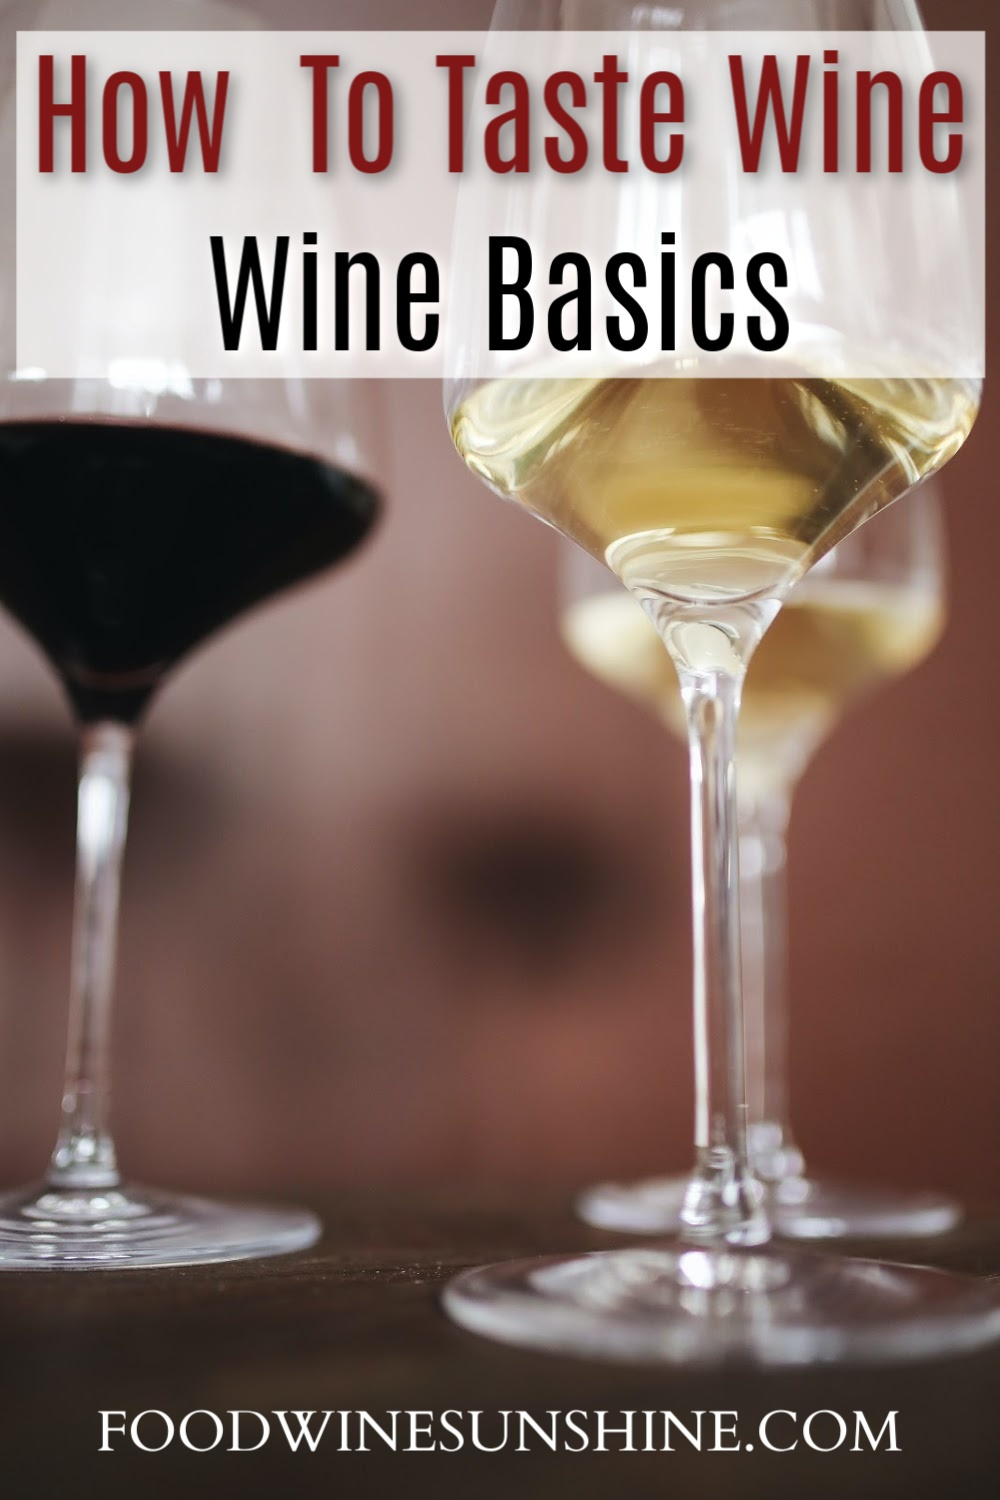 How To Taste and Describe Wine